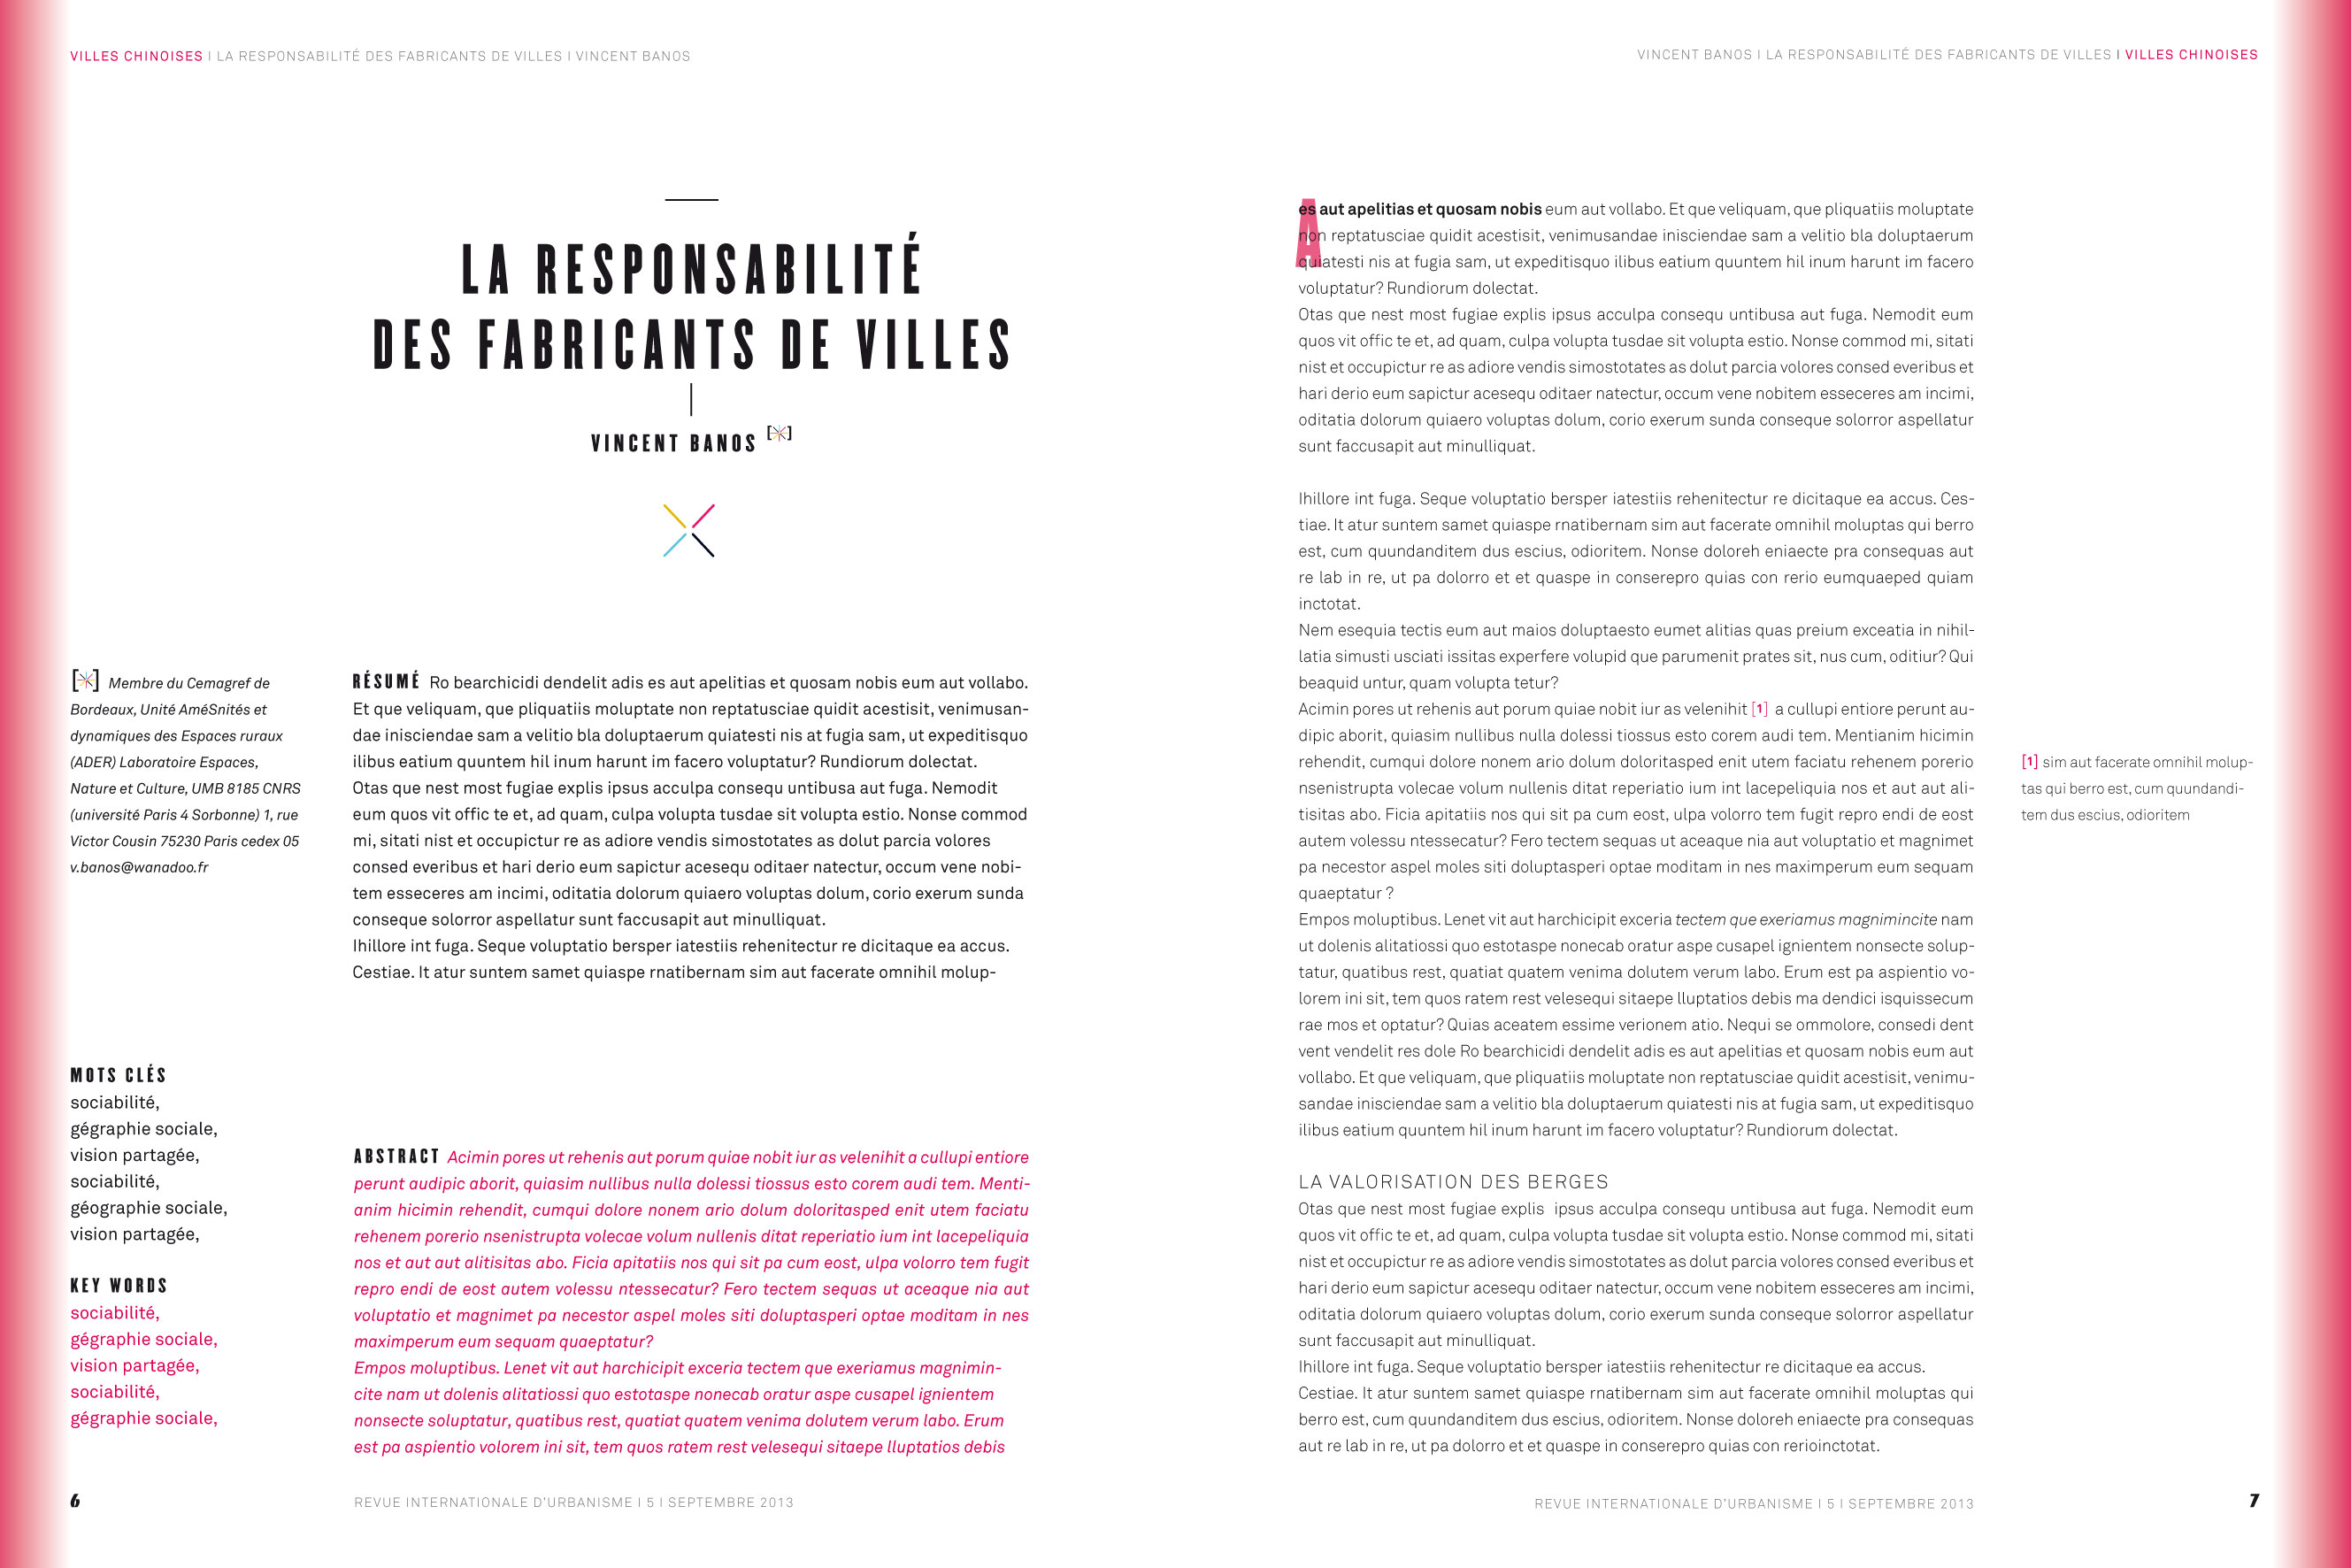 sophie_gueroult_revue_internationale_urbanisme